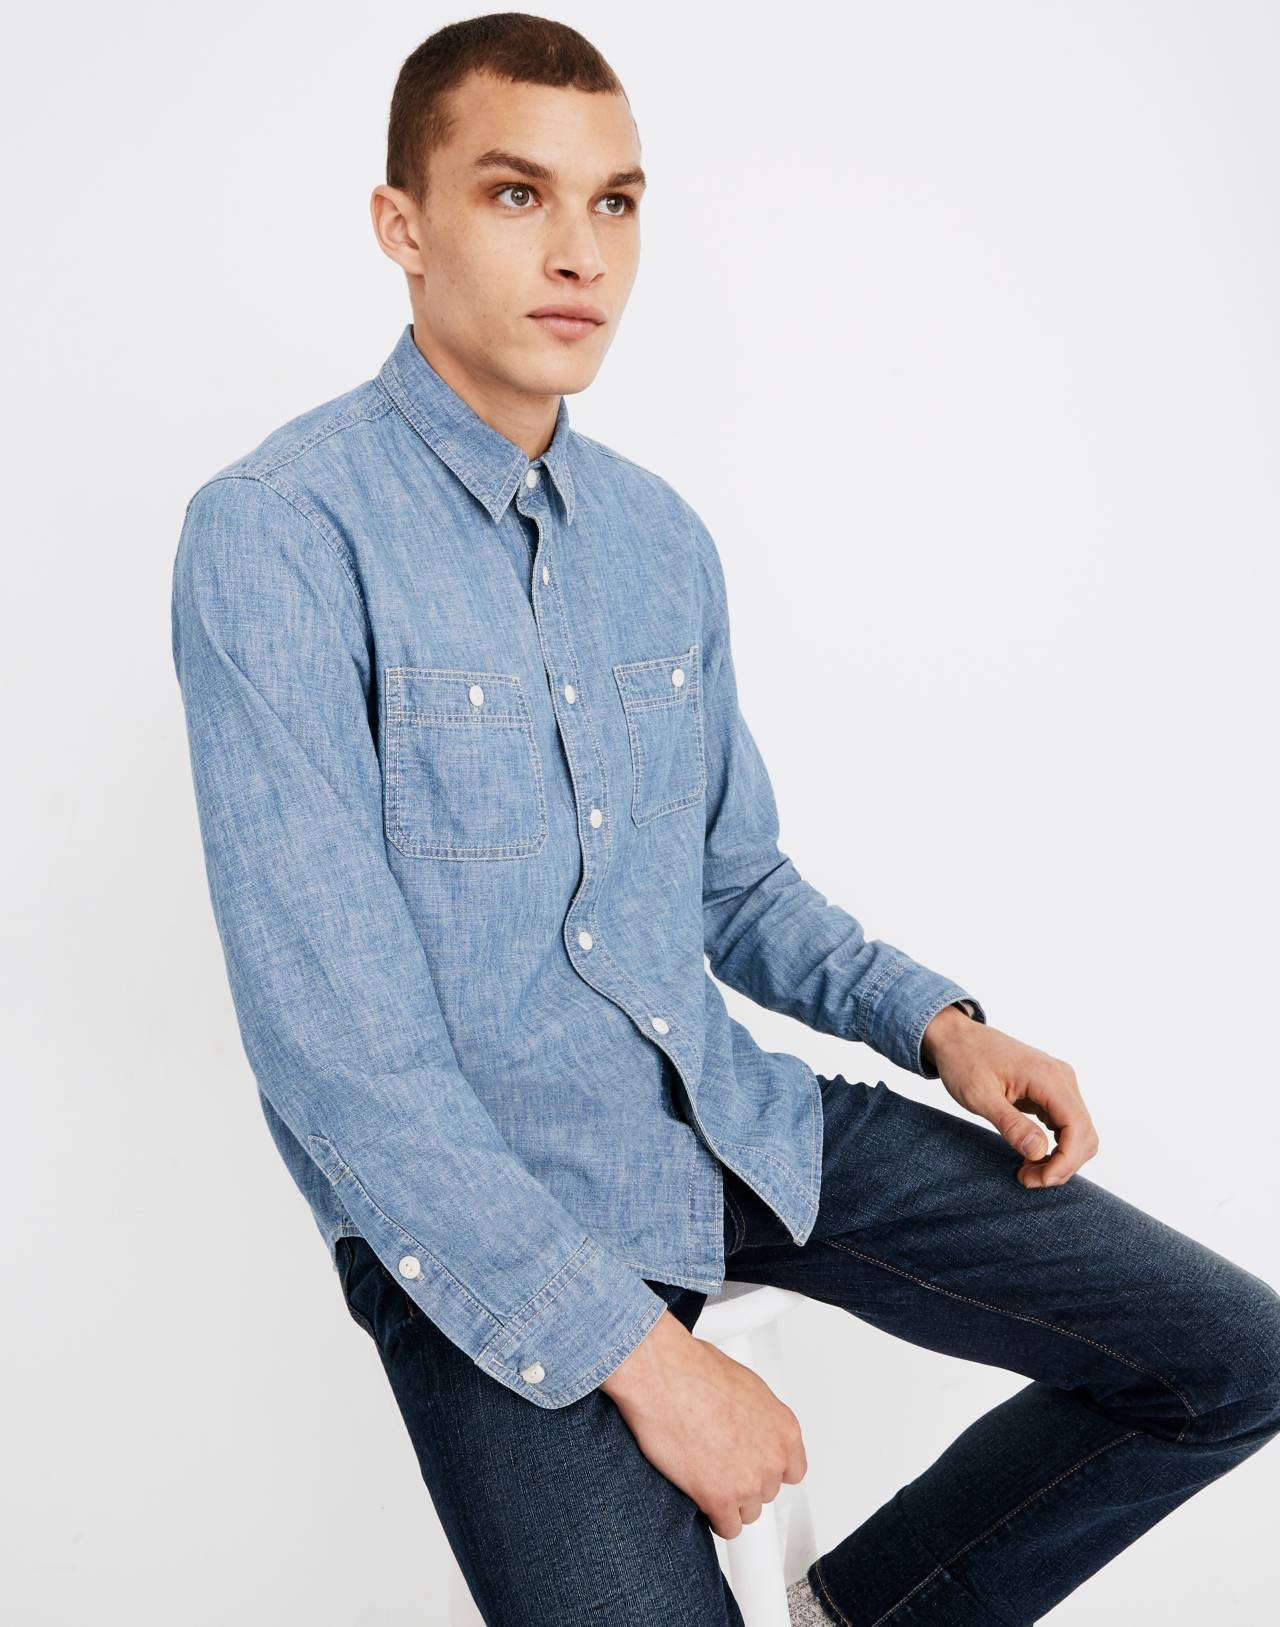 Chambray Button-Down Shirt in Lessing Wash in lessing wash image 1